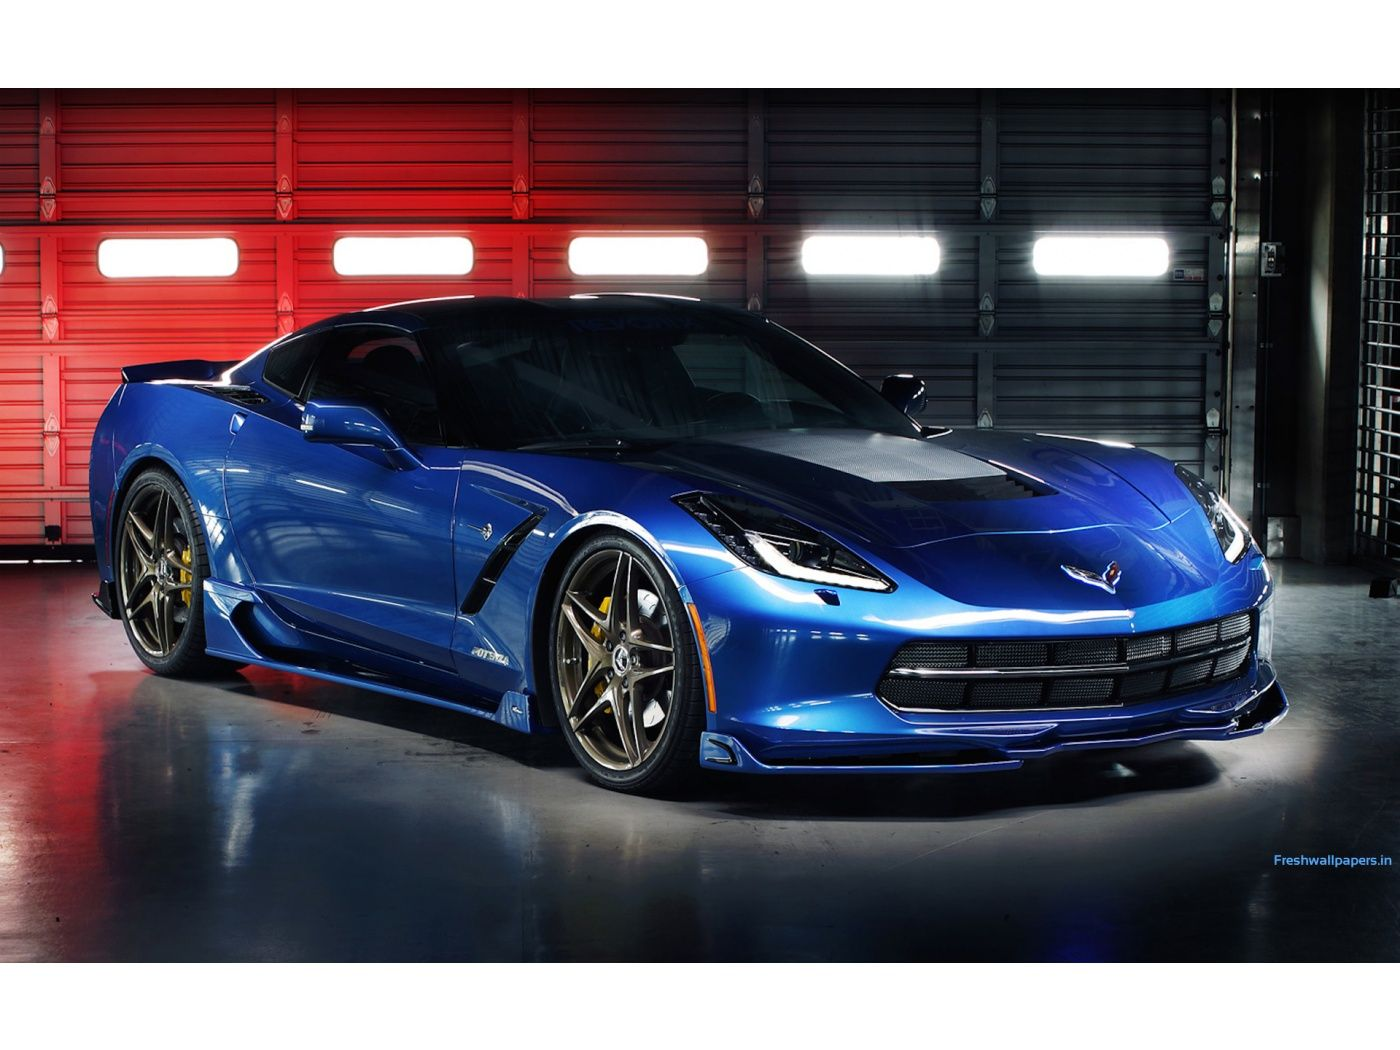 Chevrolet Corvette Wallpaper Pack P Hd Kb Rhett 3d Wallpapers